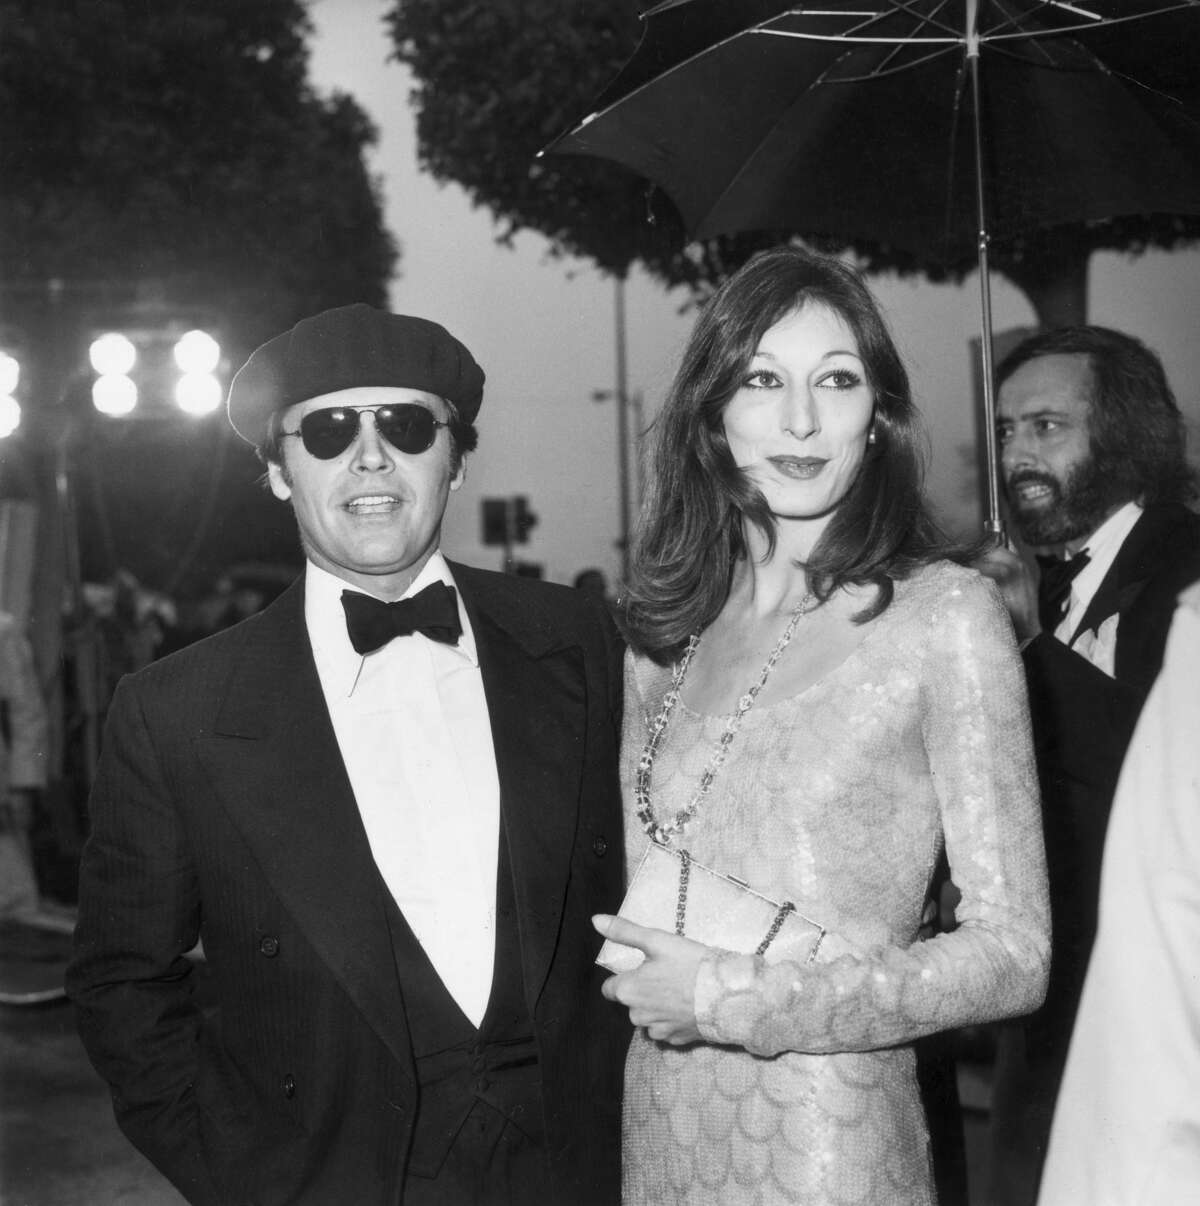 Jack Nicholson and Anjelica Huston arrive together at the Academy Awards onApril 8, 1975. They dated on-again, off-again until 1989.